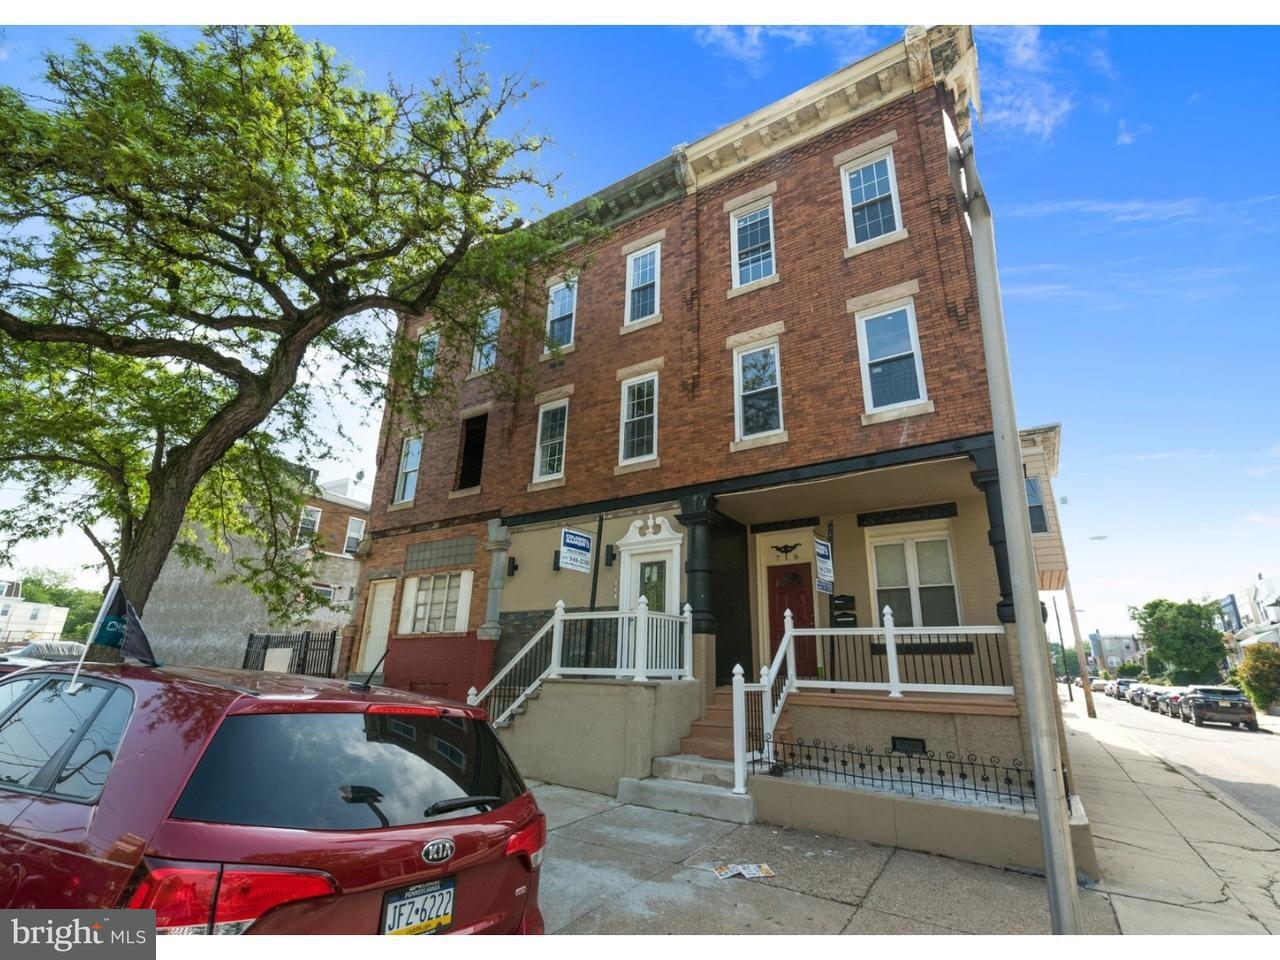 718 N 48TH Philadelphia, PA 19139